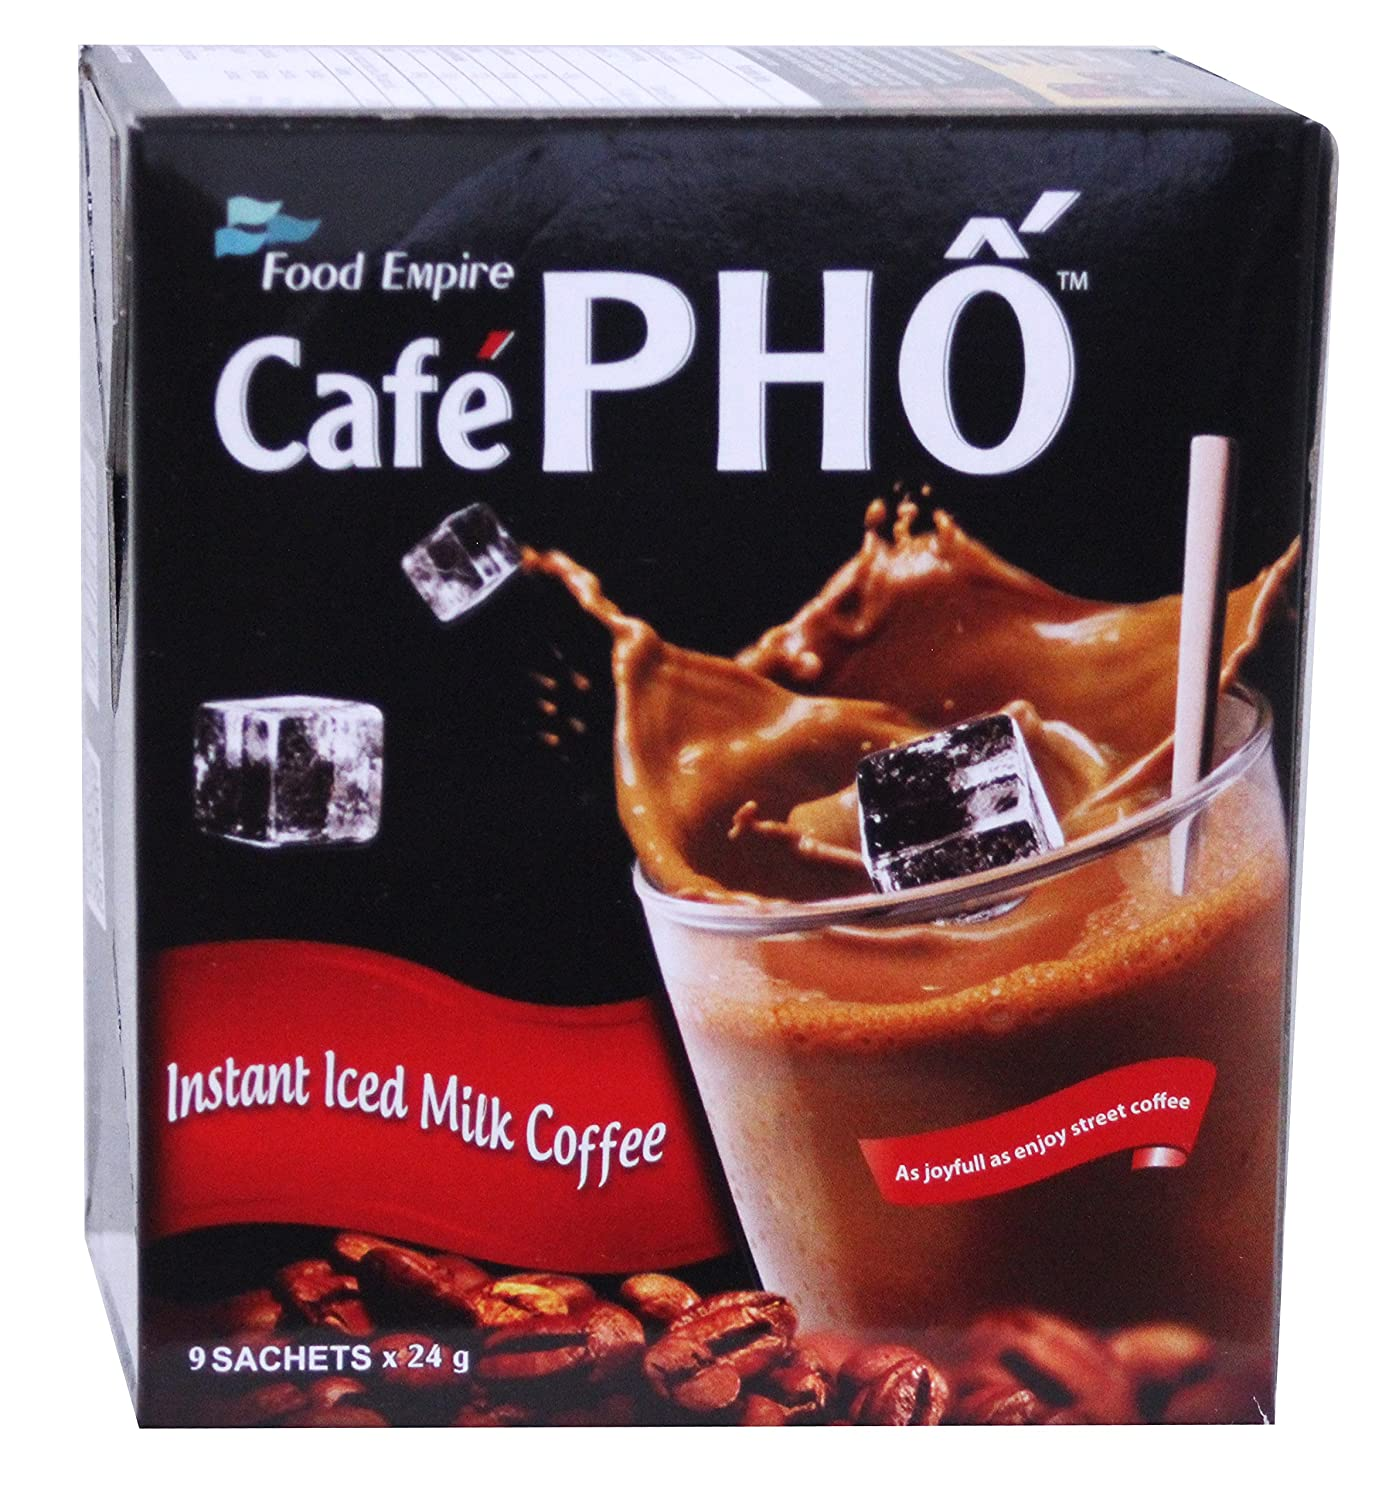 即溶越南牛奶冰咖啡 Cafe Pho Viet Milky Iced coffee instant coffee & Creamer drink mix - 9 Sachets / 7.62 oz (3 Packs)